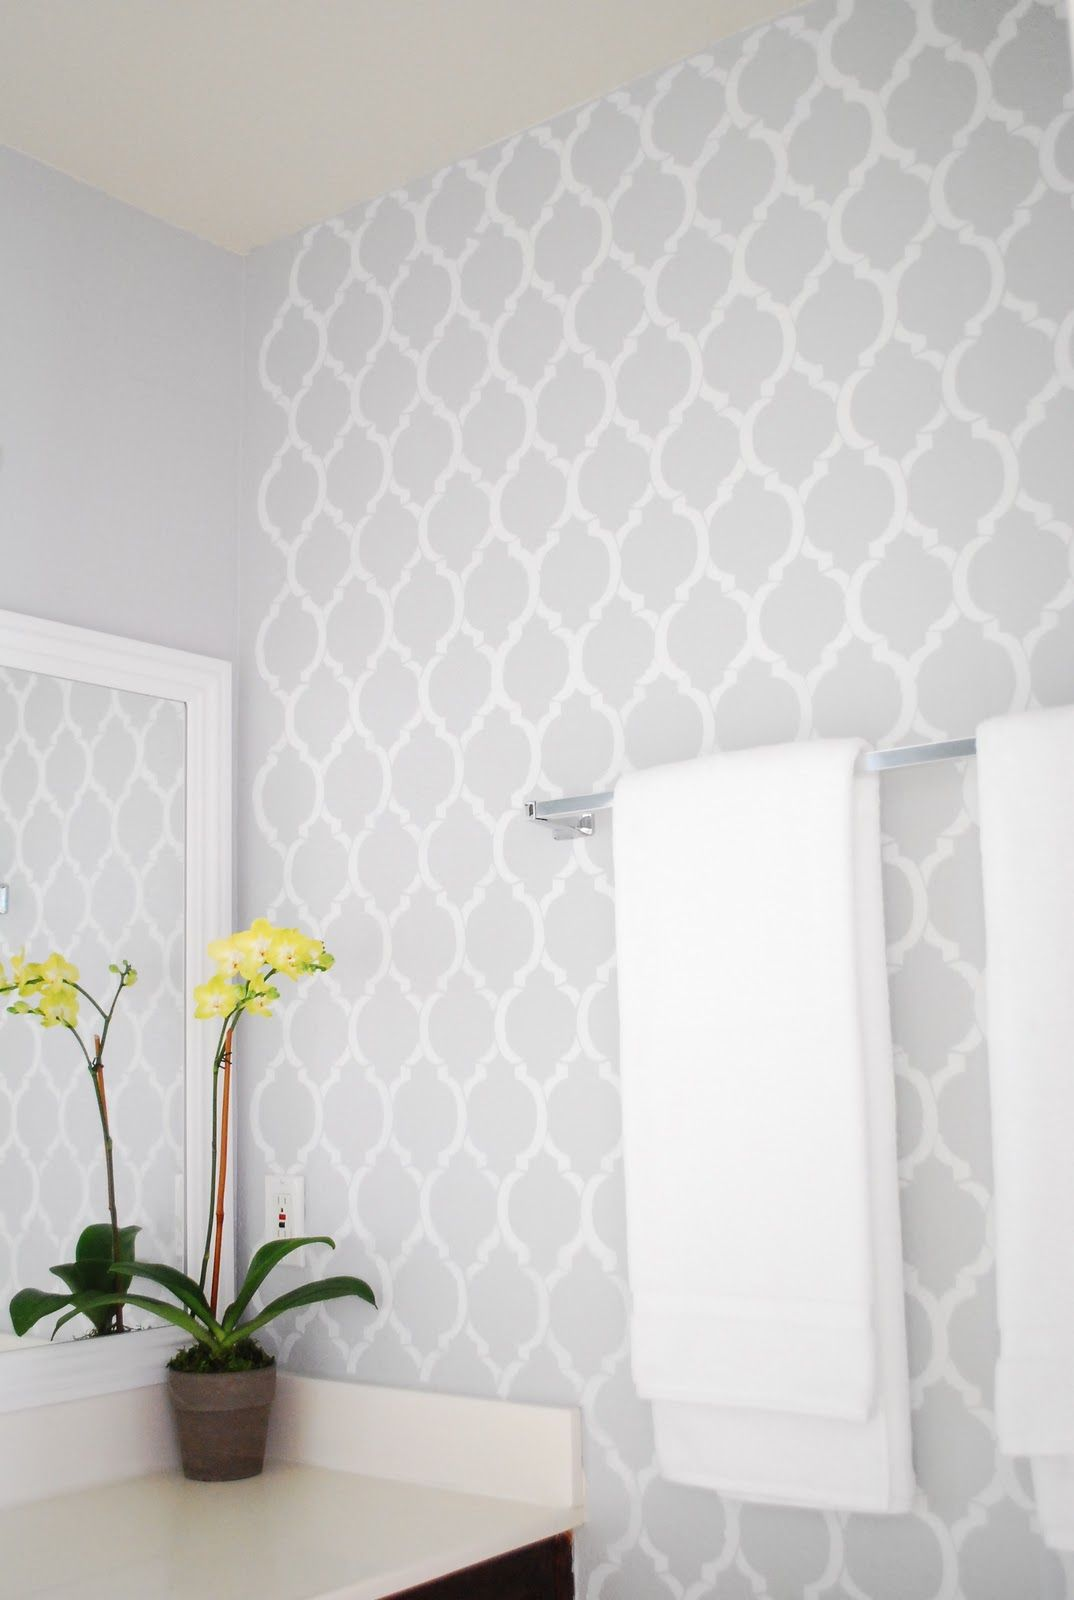 Great Ideas - 26 Before and After Room Reveals   decorating ...